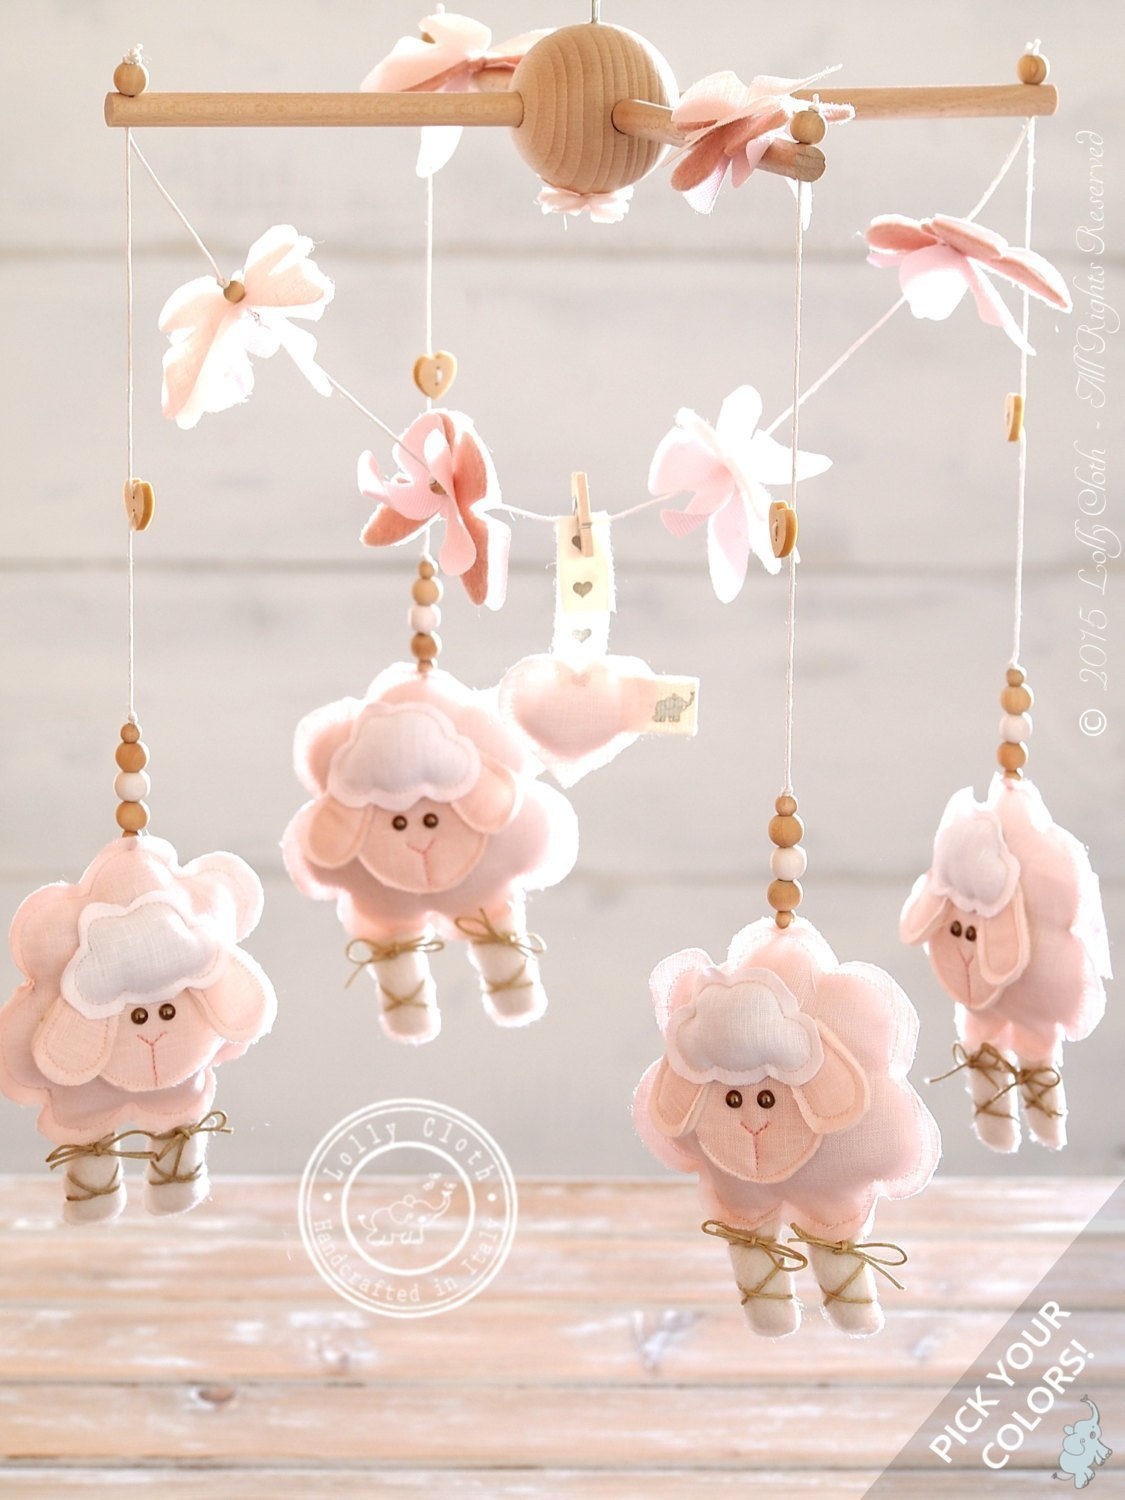 Baby Mobile Hanging, Pink Nursery Decor, Baby Crib Mobile Sheep, 2-DAY FEDEX DELIVERY to USA, Canada, Europe & Others